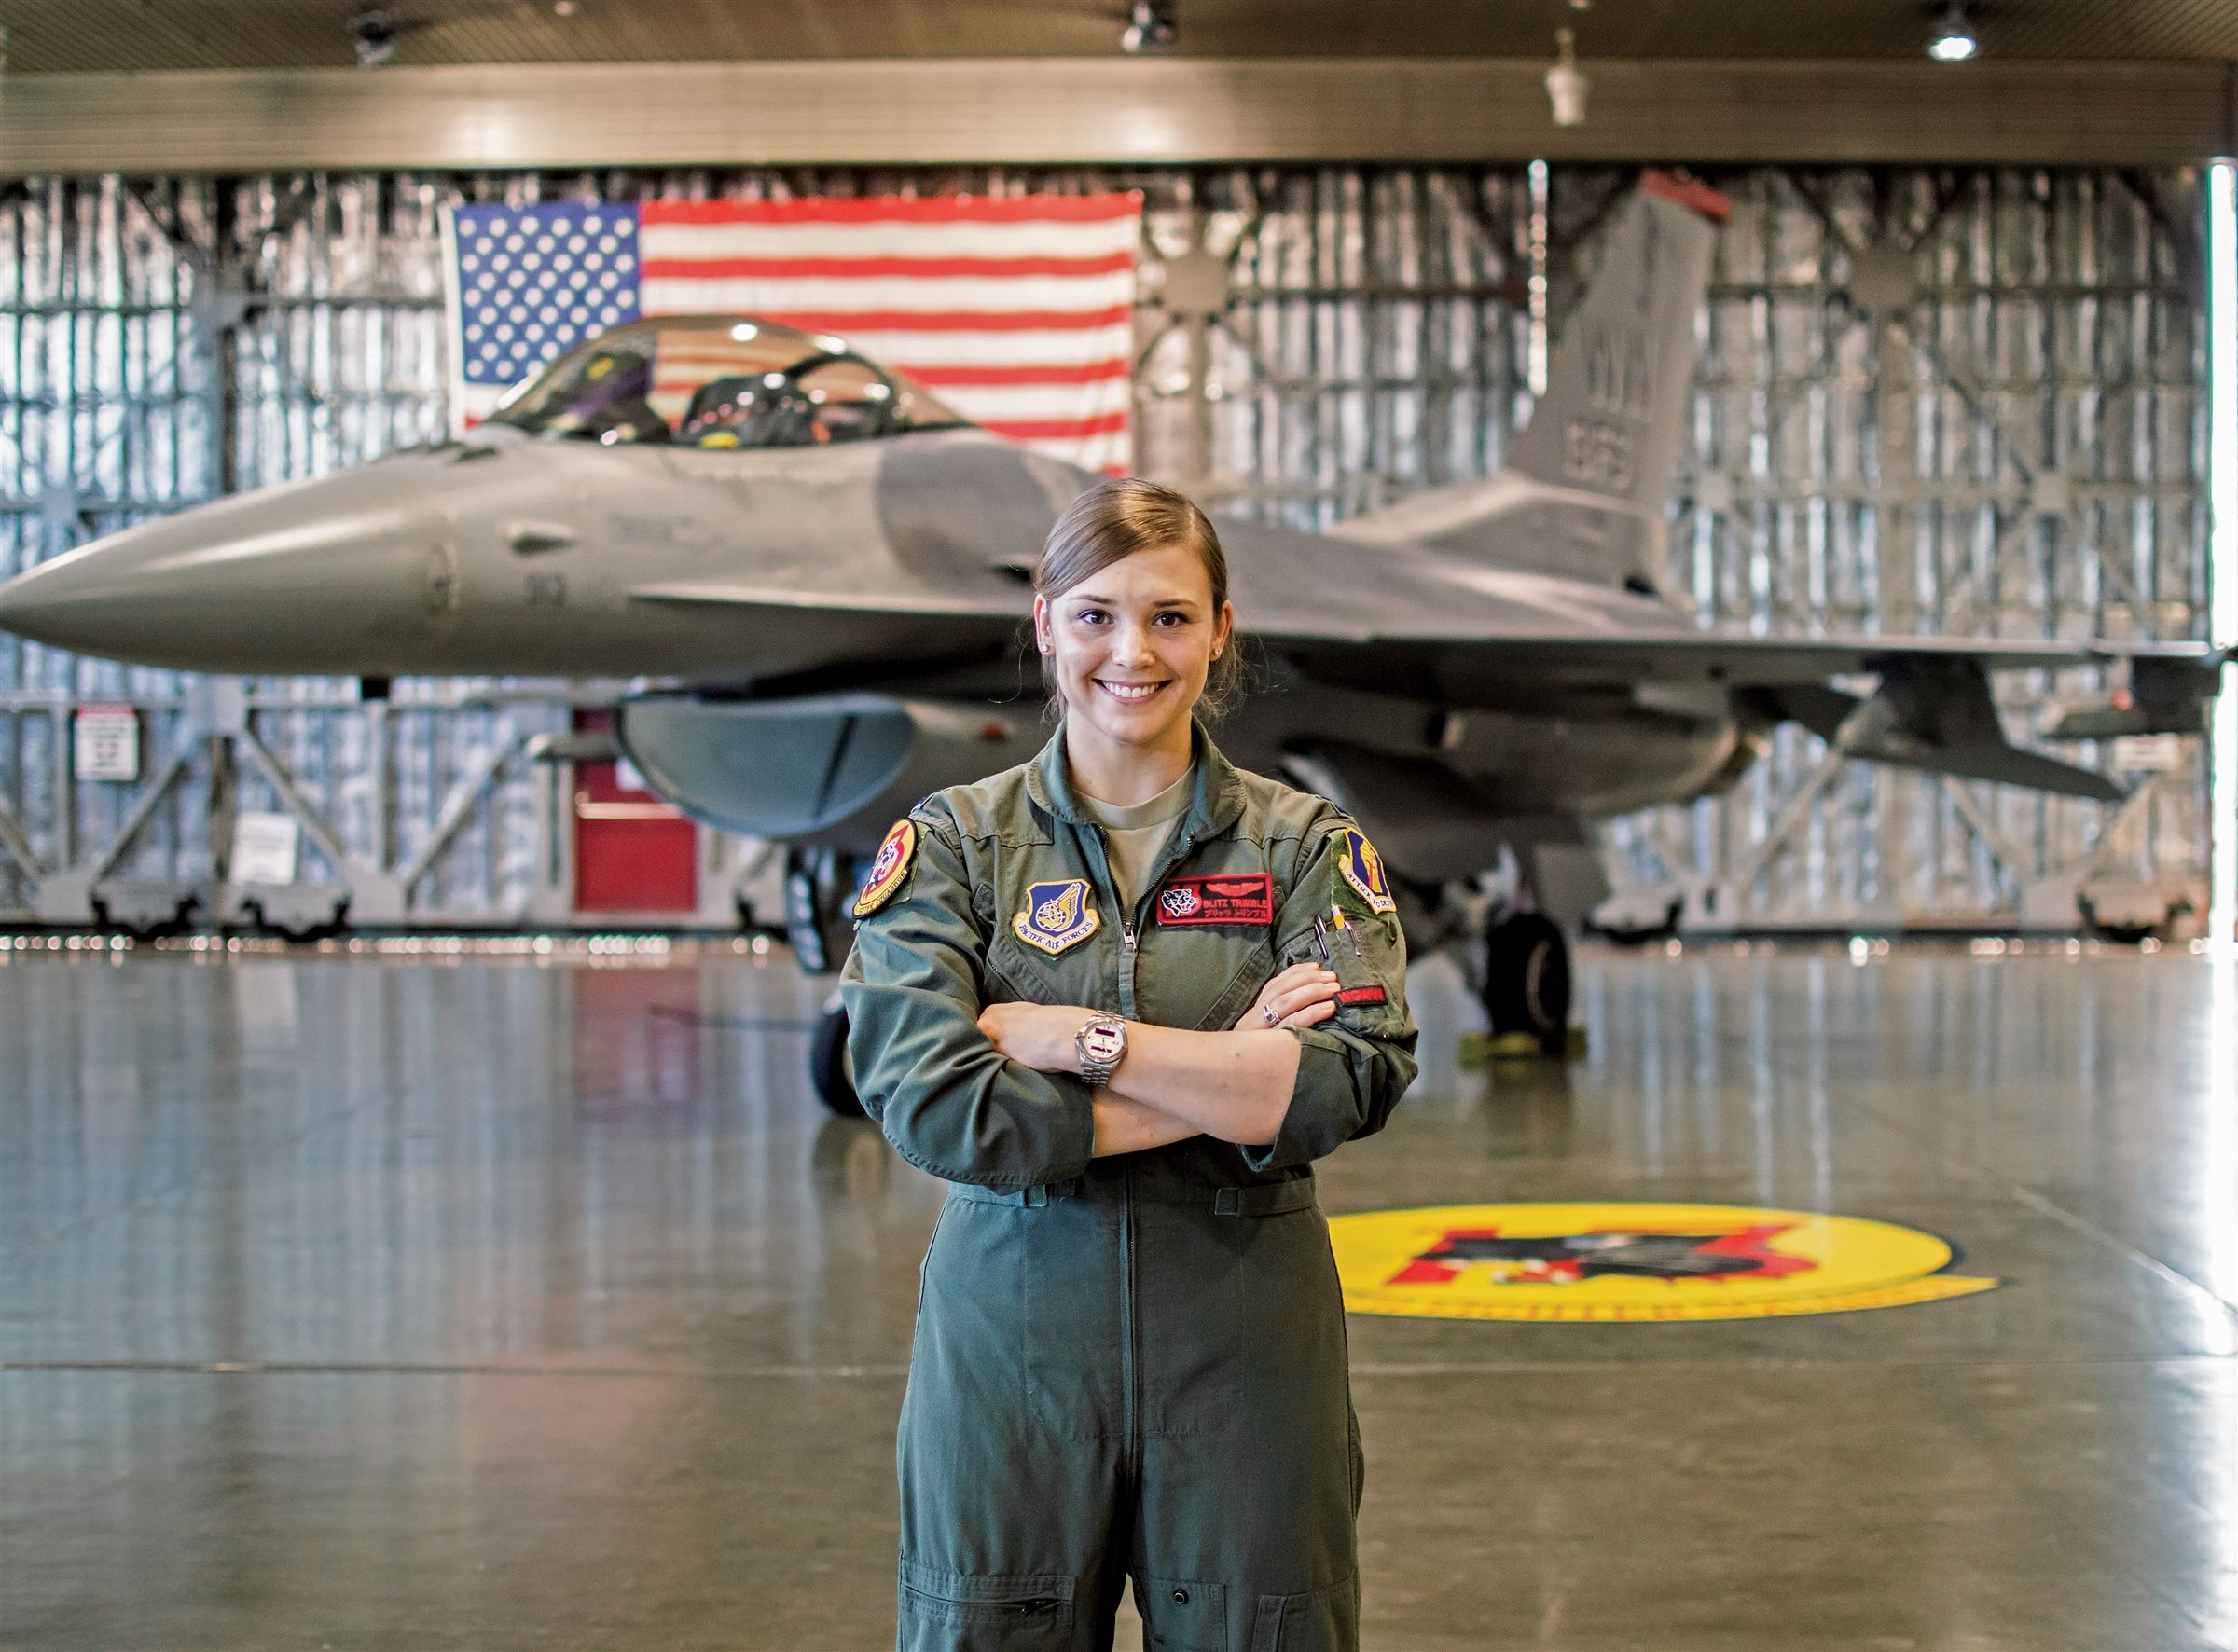 "Captain Trimble always knew she wanted to be a fighter pilot. It was the more challenging path, but she knew that it would bring the most joy. These days she flies F-16s in the United States Air Force. <br> <br><a class=""button"" href=""https://www.hutchisonschool.org/page/alumnae-news-detail?pk=1018983"">Read Her Story</a>"